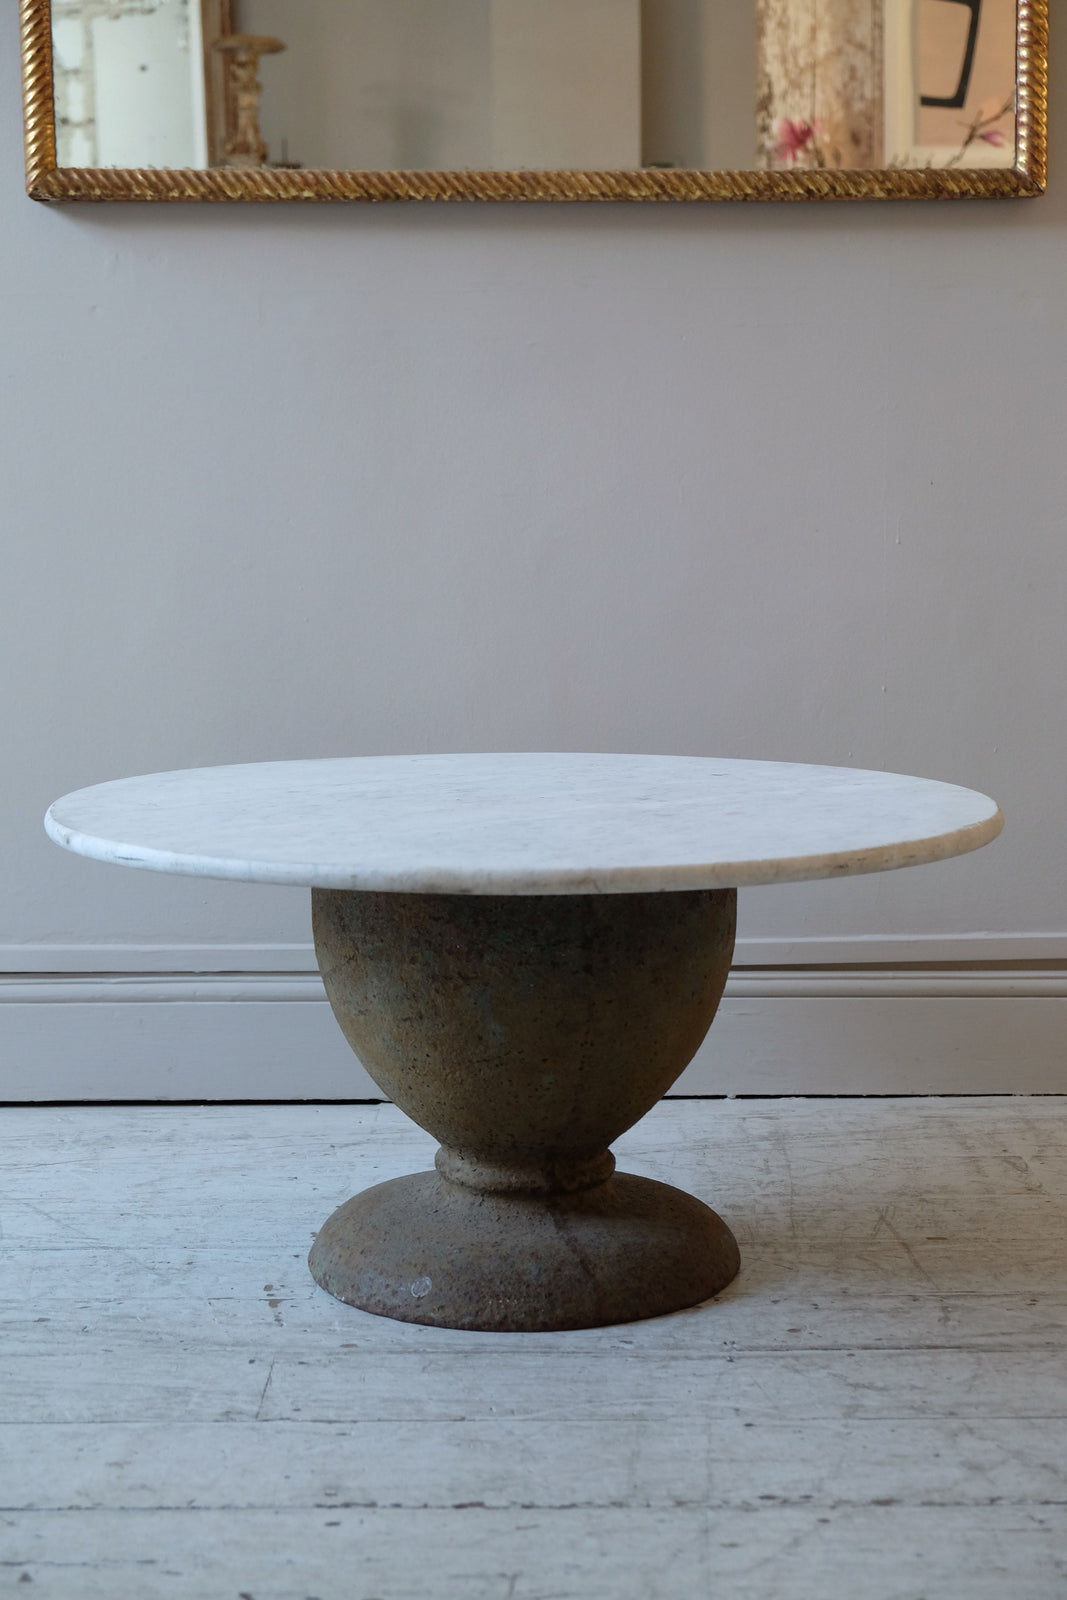 Late 19th C. Cast Iron Base Table with Antique Marble